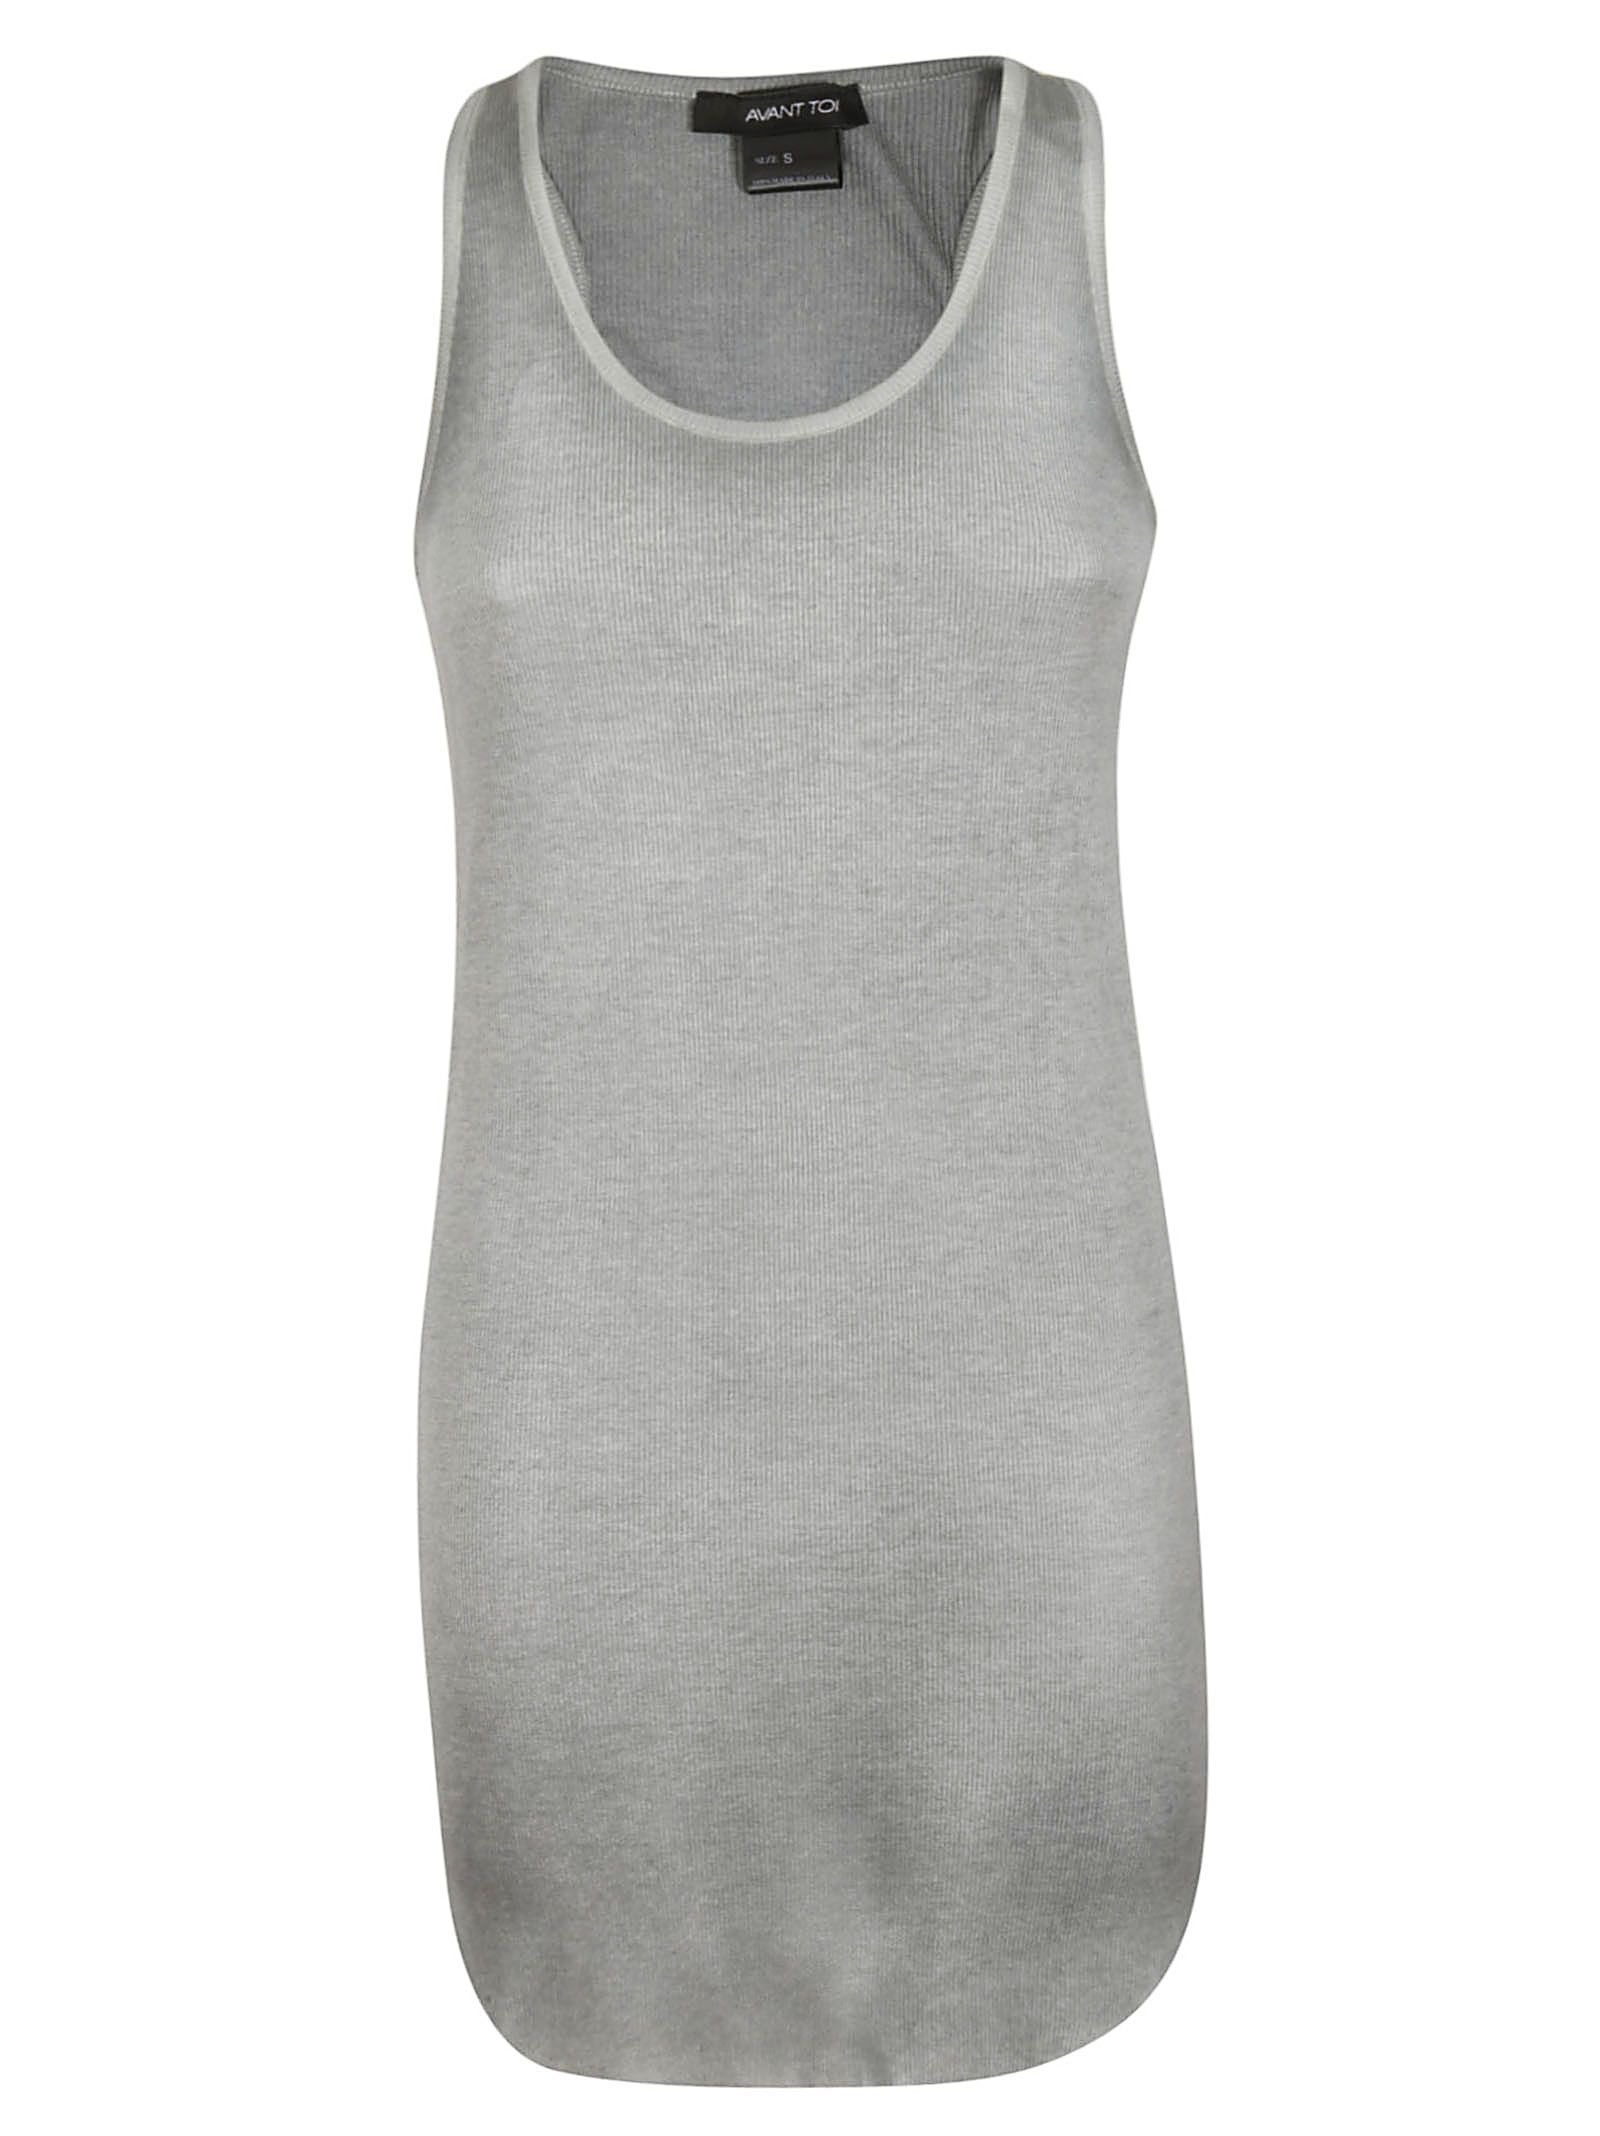 Avant Toi Knitted Tank Top